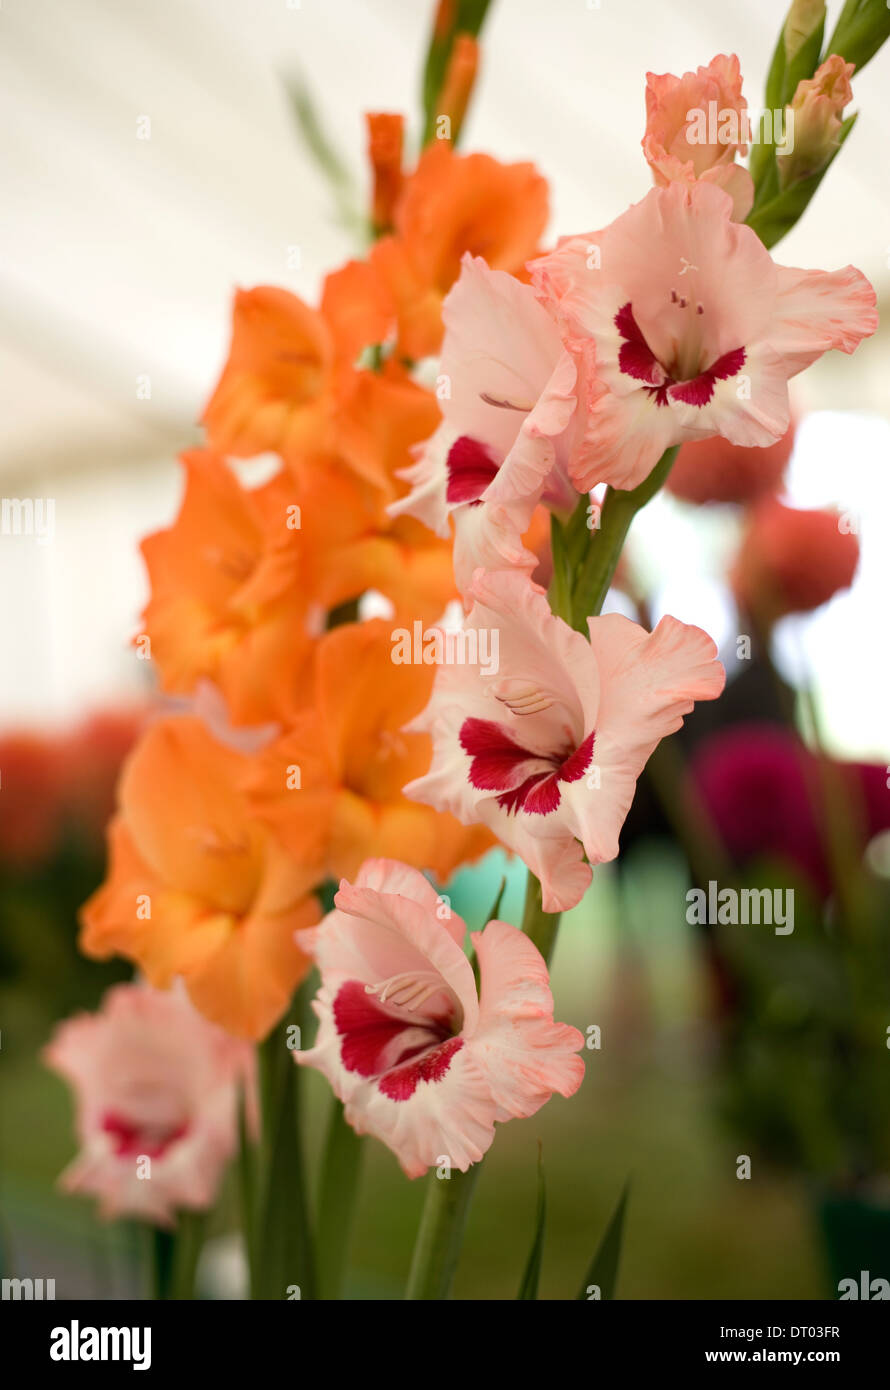 What to do with children of gladioli in the fall - recommendations from experienced gardeners 91